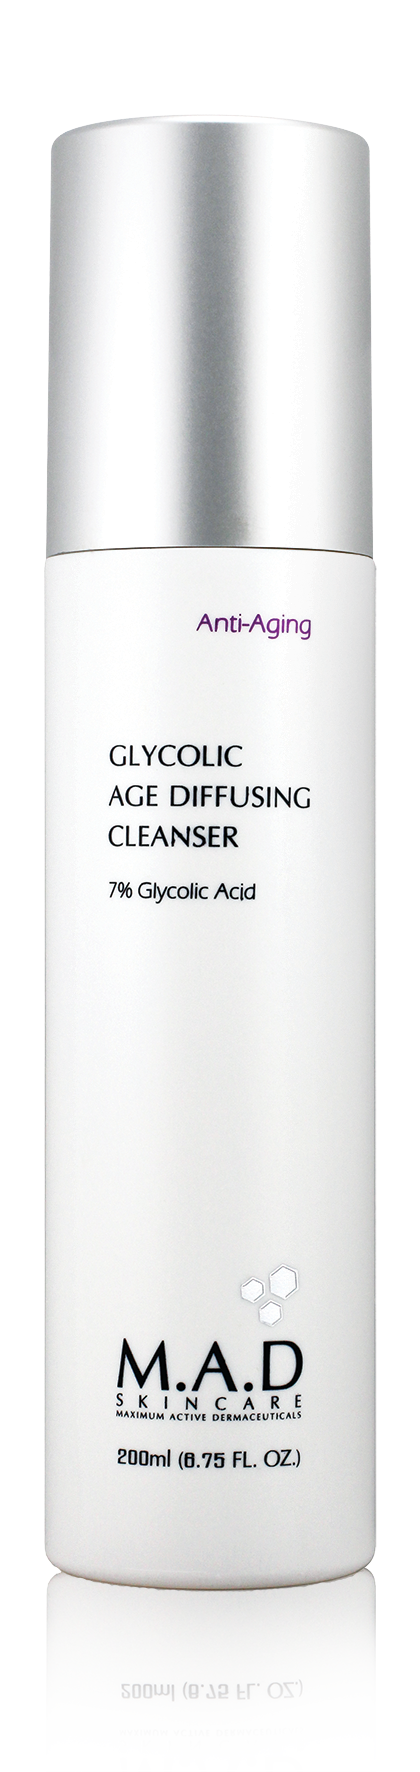 MAD GLYCOLIC AGE DIFFUSING CLEANSER